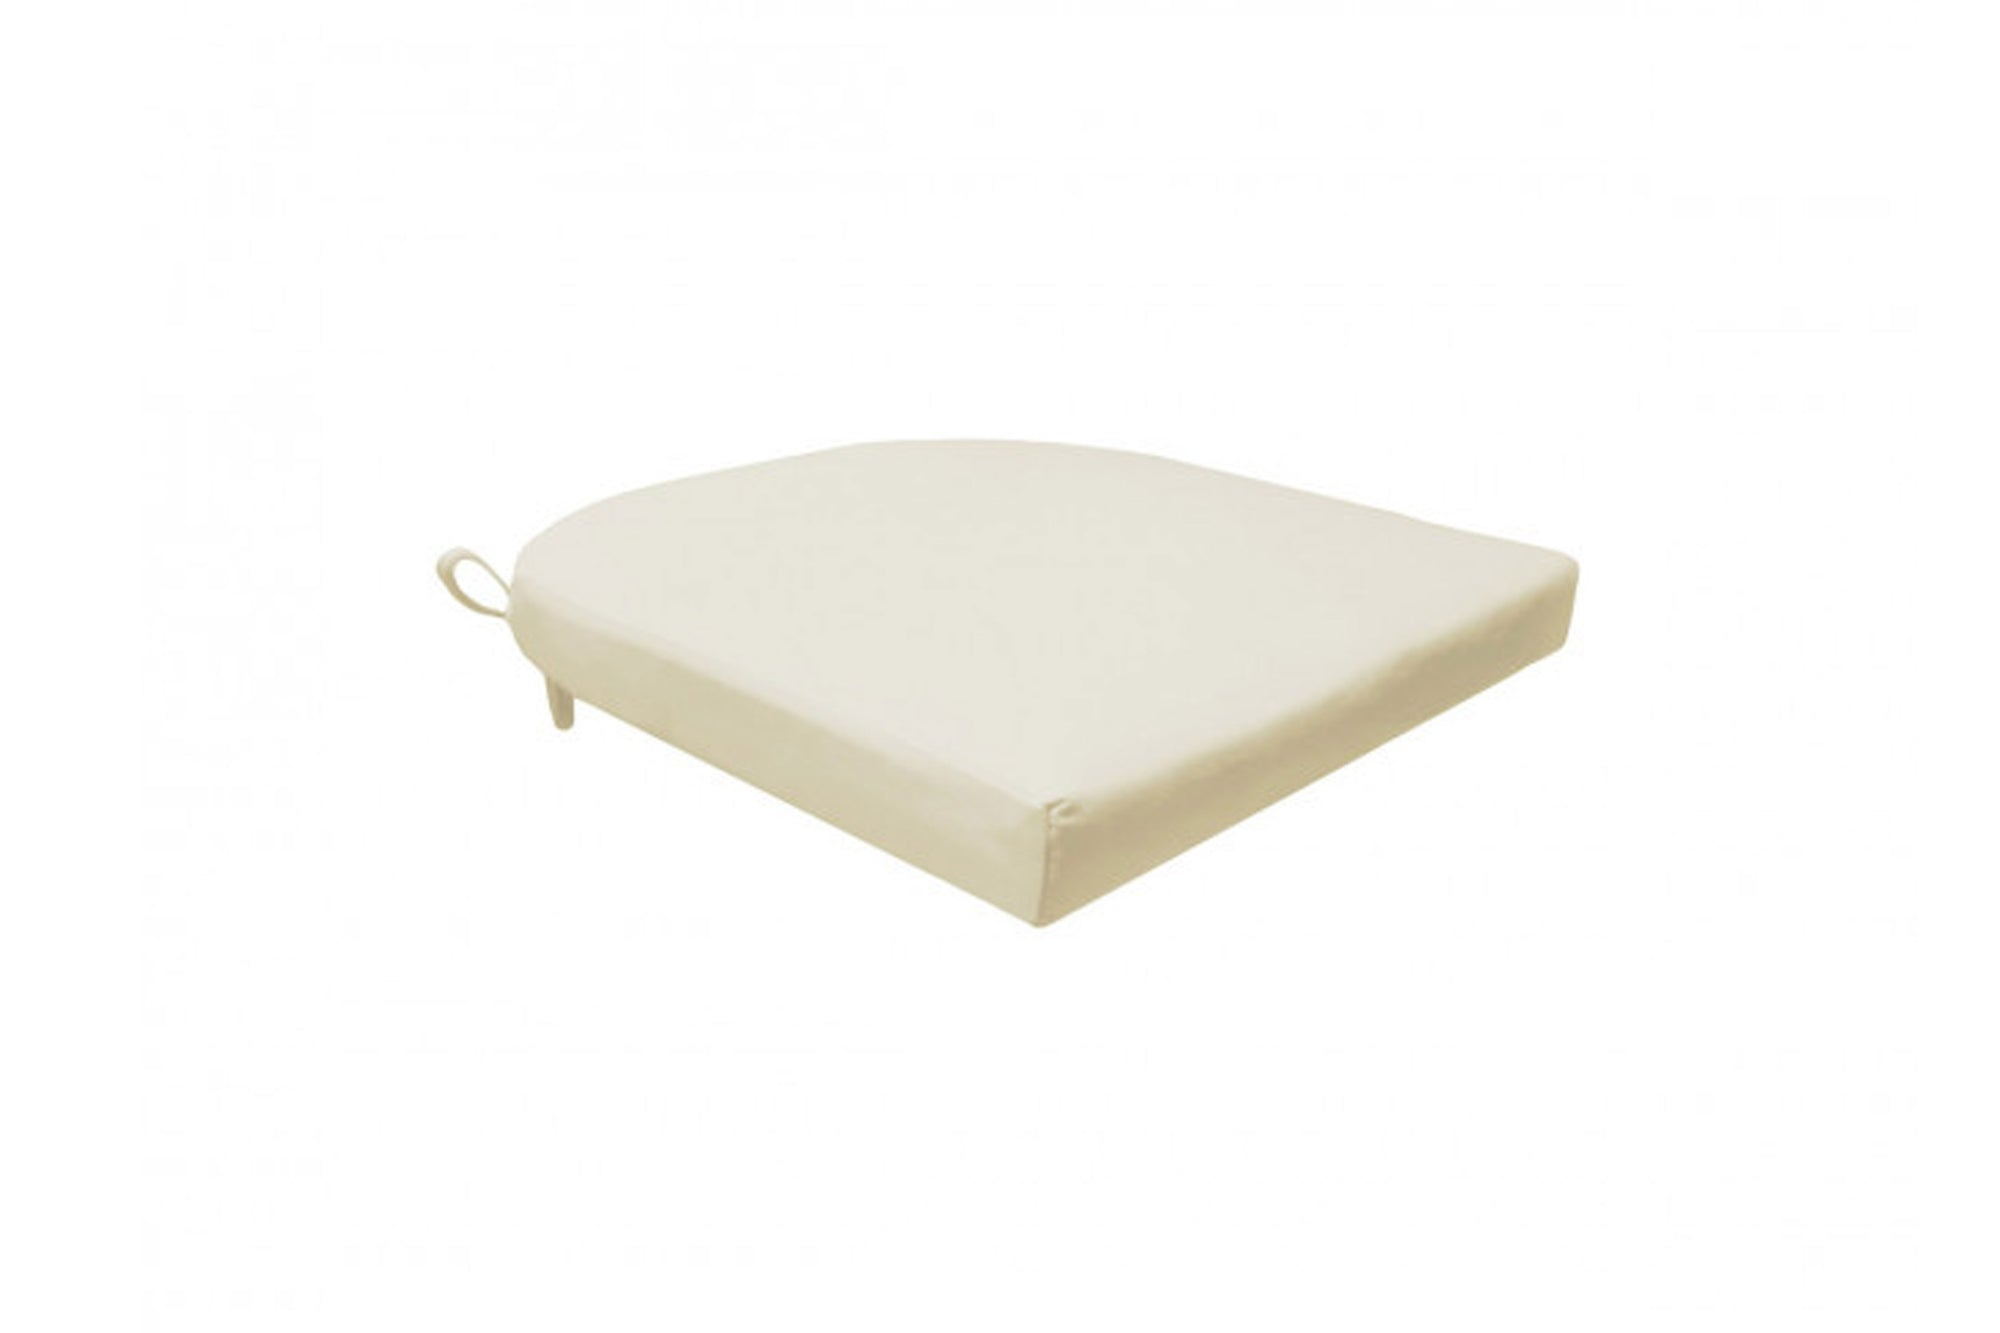 Optional off-white cushion